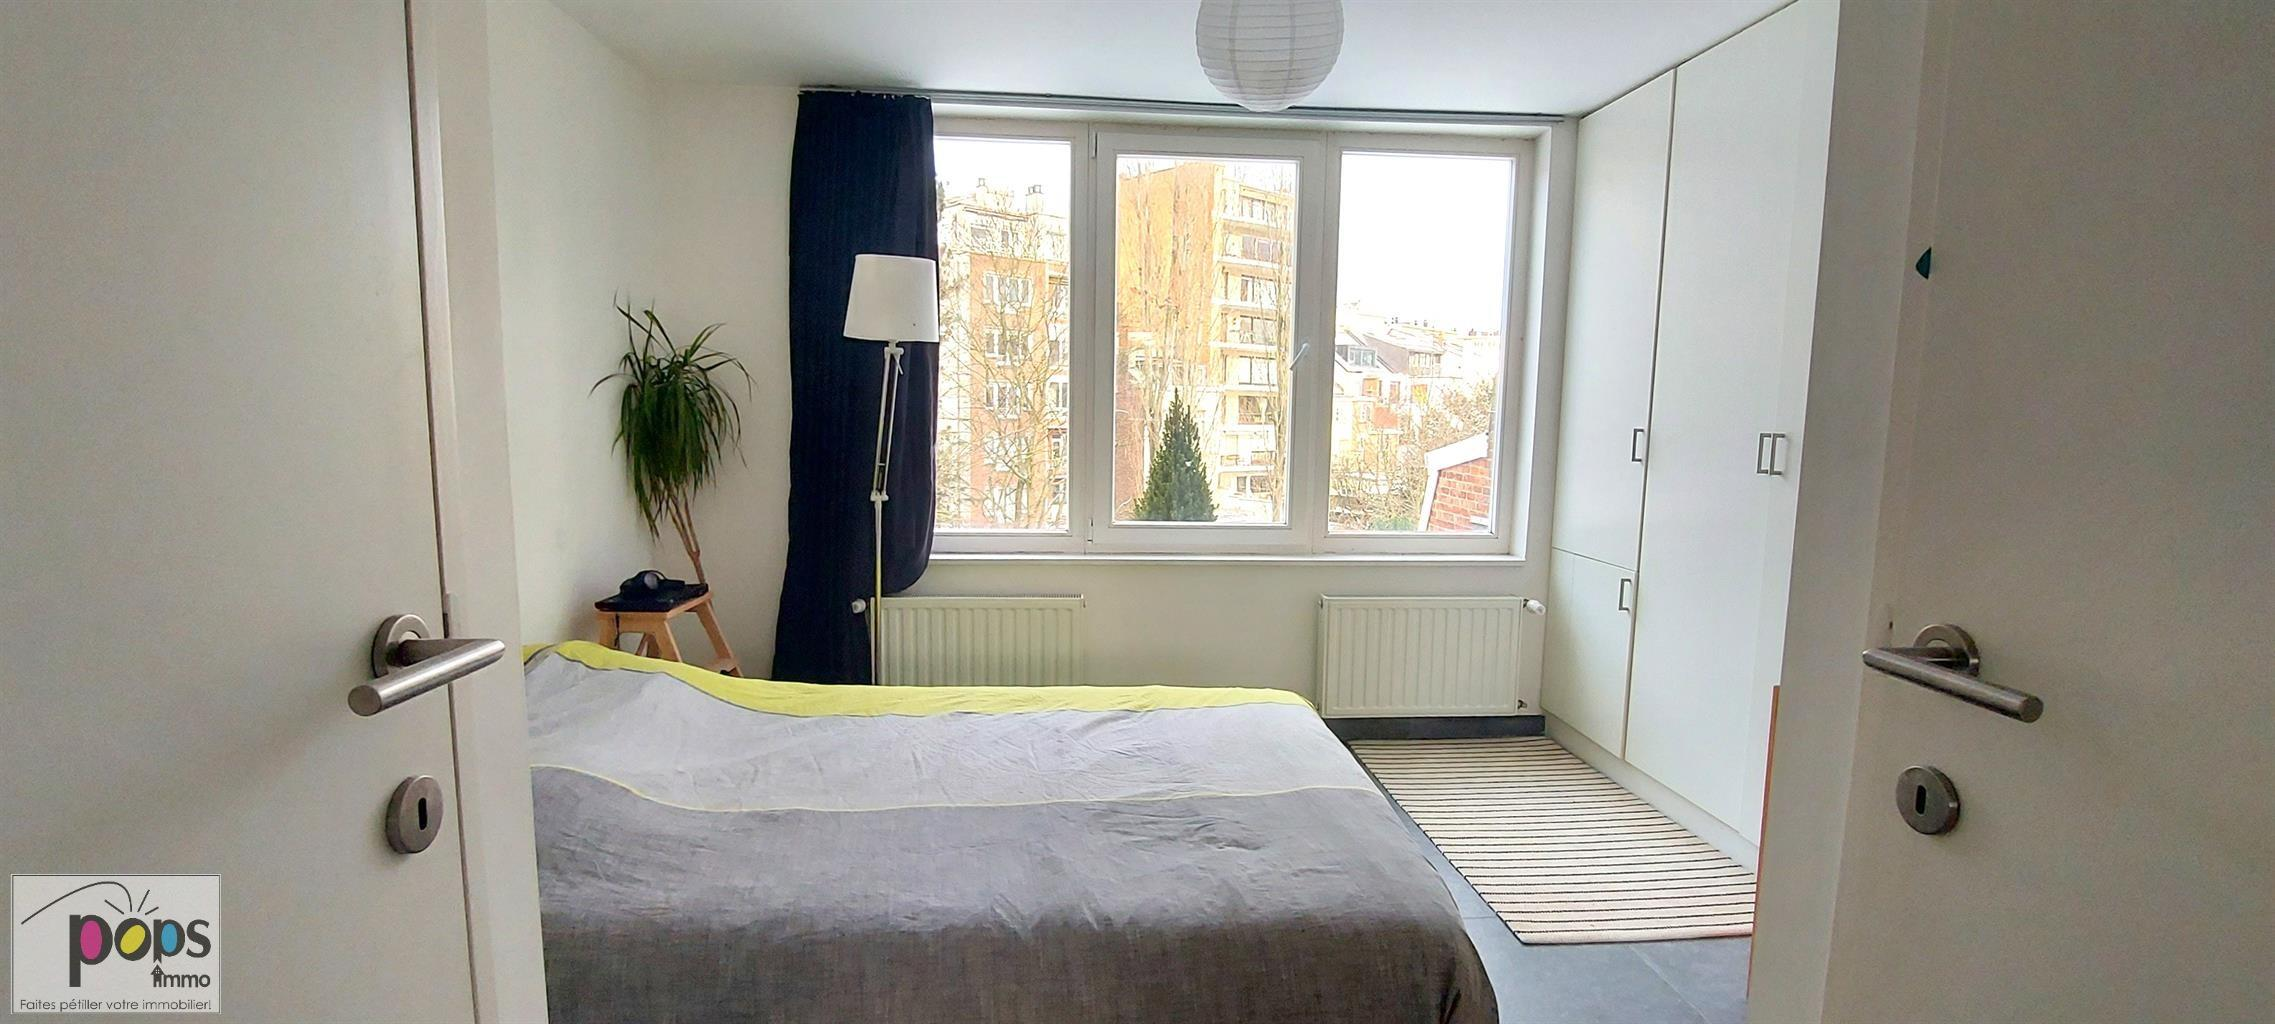 Appartement - Uccle - #4294712-3